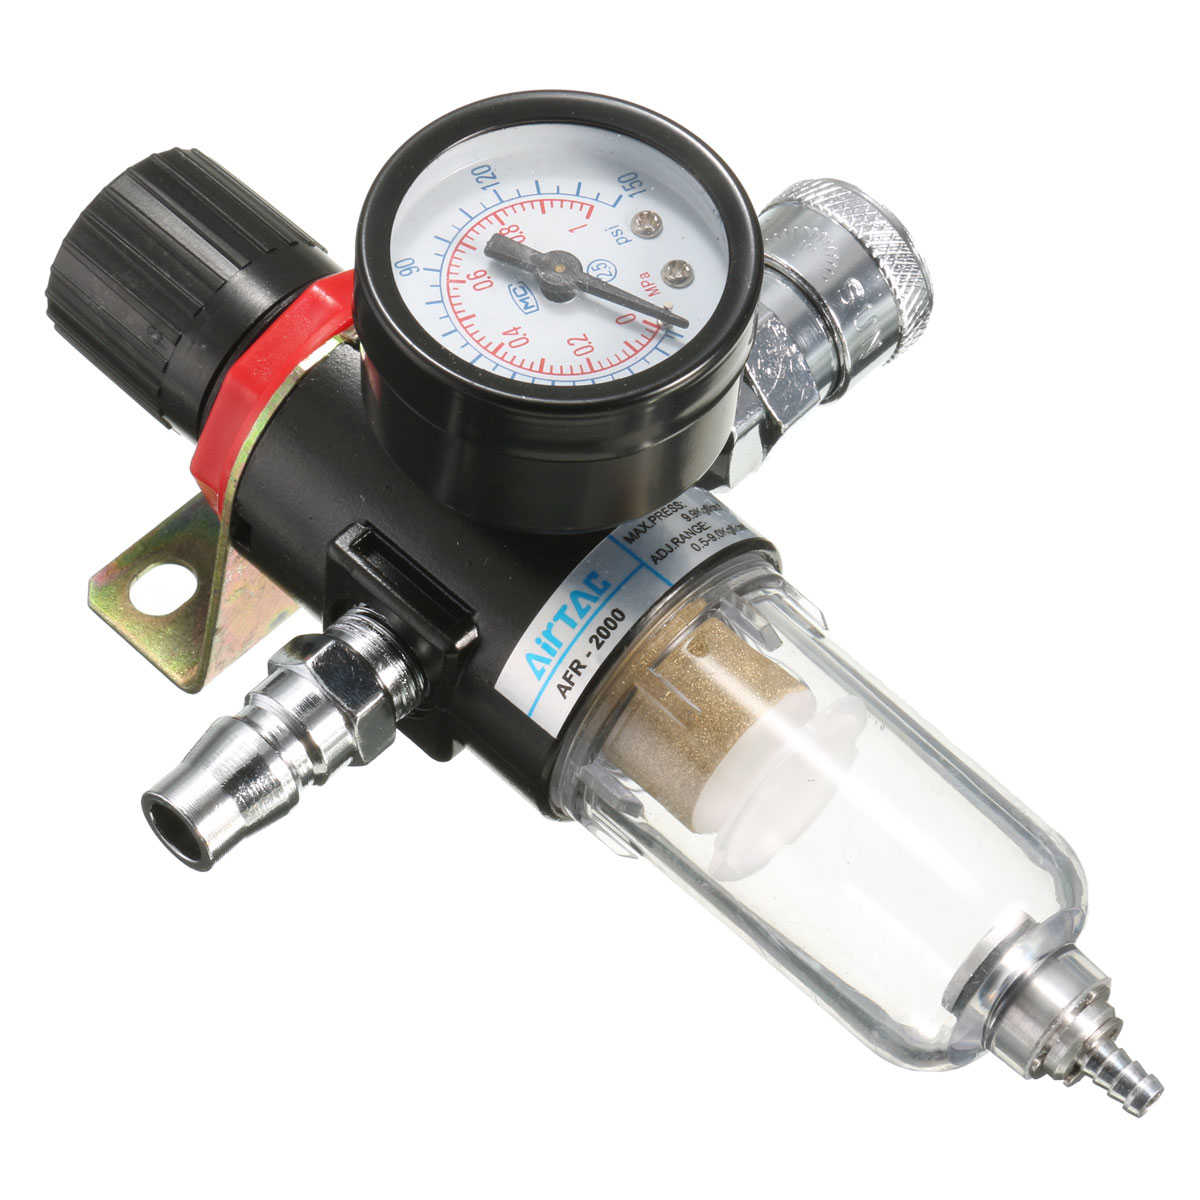 130PSI Air Compressor Filter Moisture Water Trap Filter Separator Pressure Regulator Gauge Tools (Psi & MPa Display)